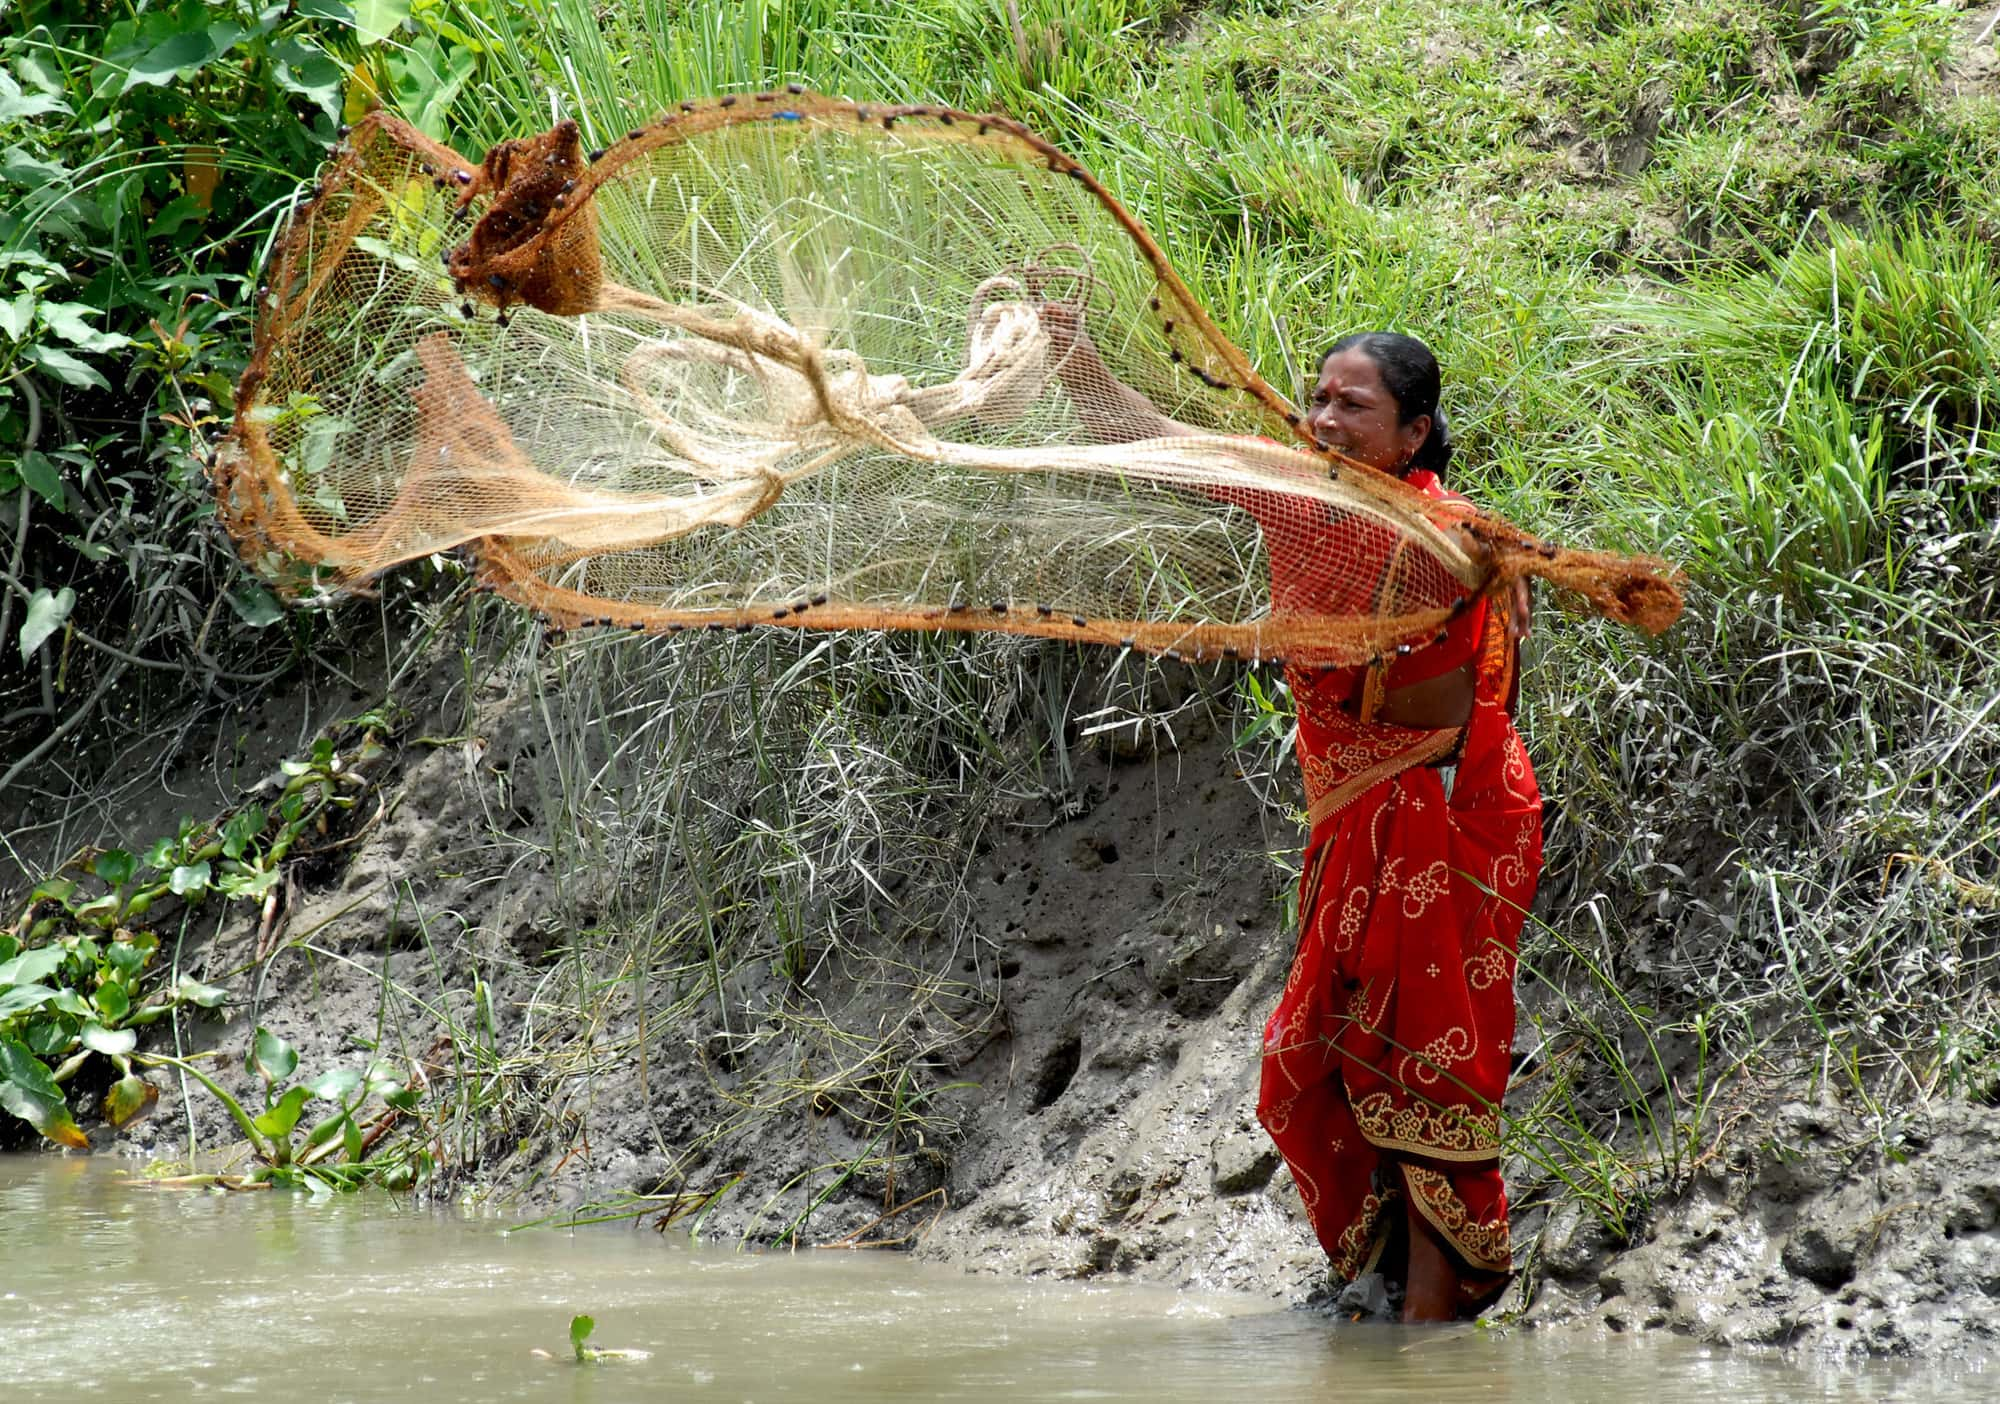 Women empowerment and gender equality can lead to better outcomes for aquatic food systems